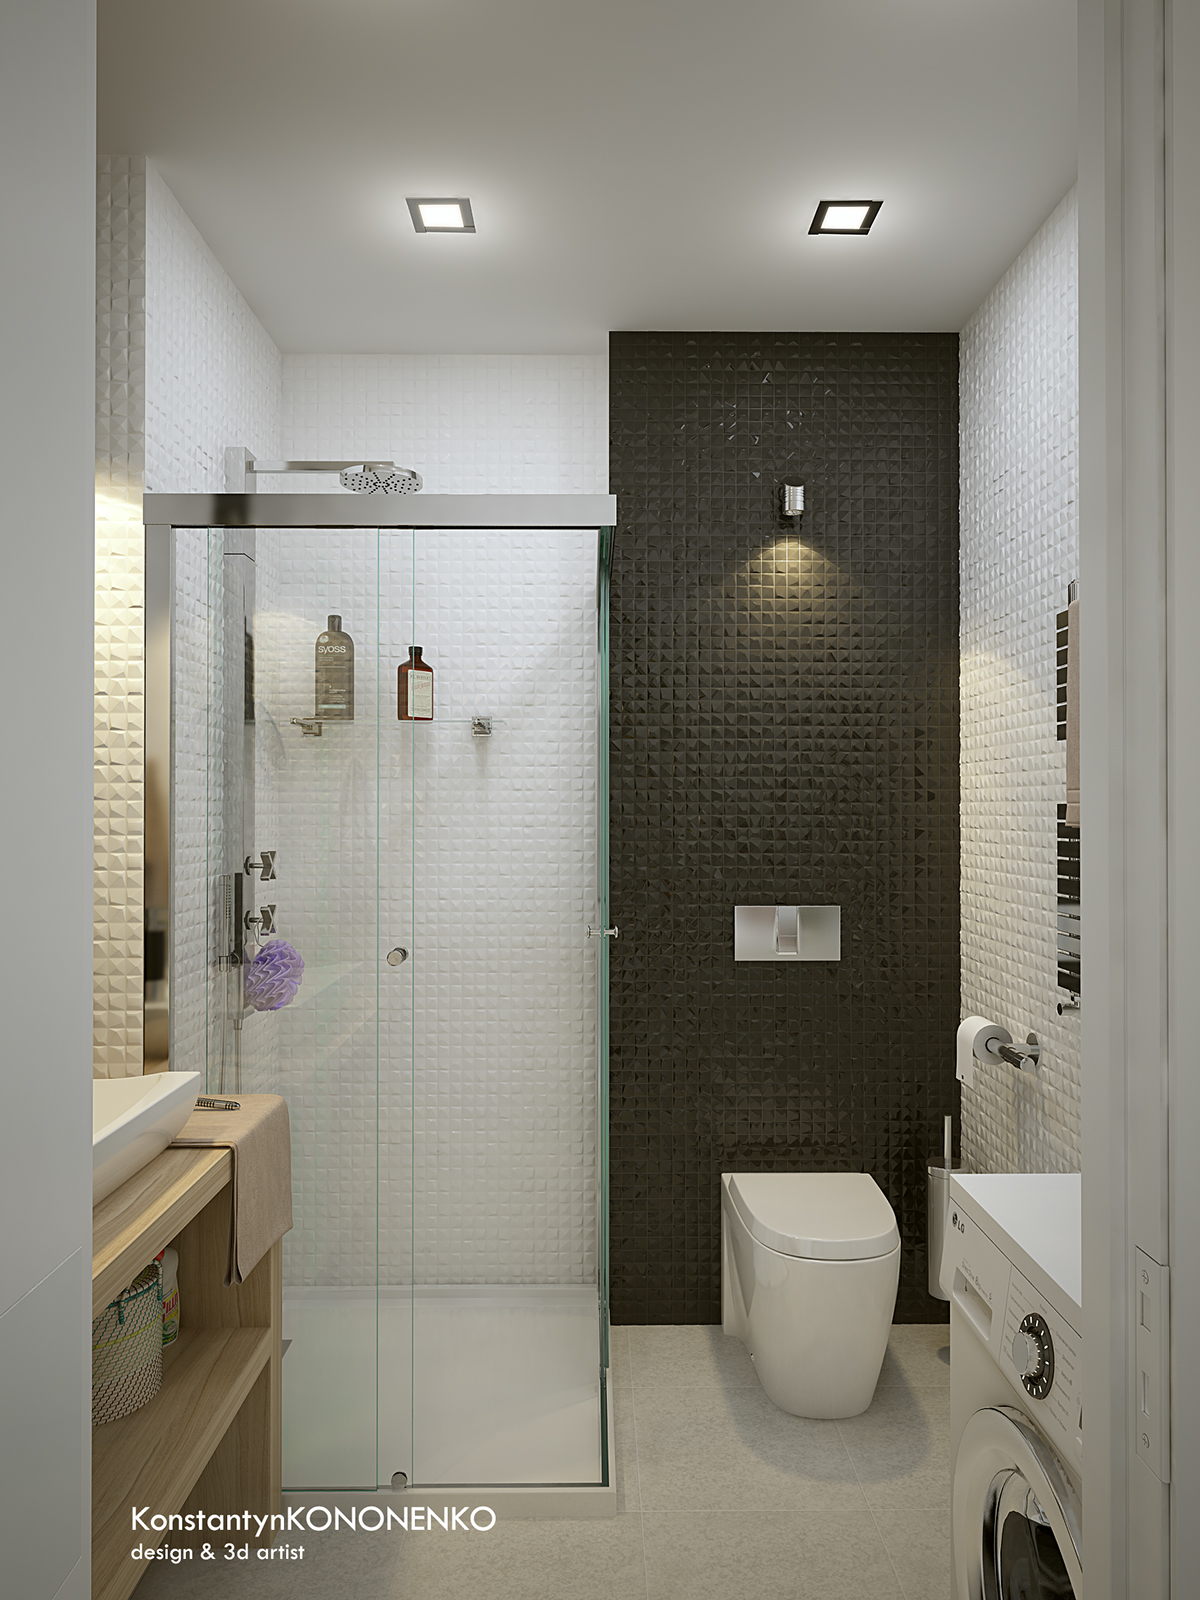 5 apartment designs under 500 square feet for Modern apartment bathroom ideas